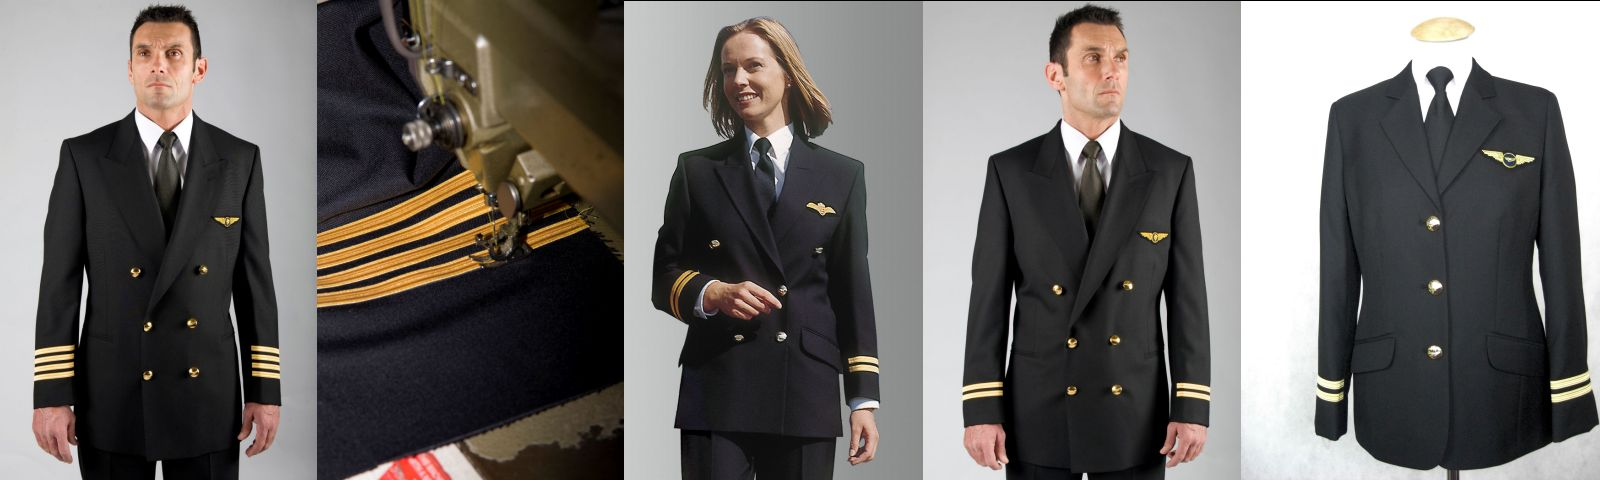 Uniform Jackets - Double Breasted - Professionally tailored